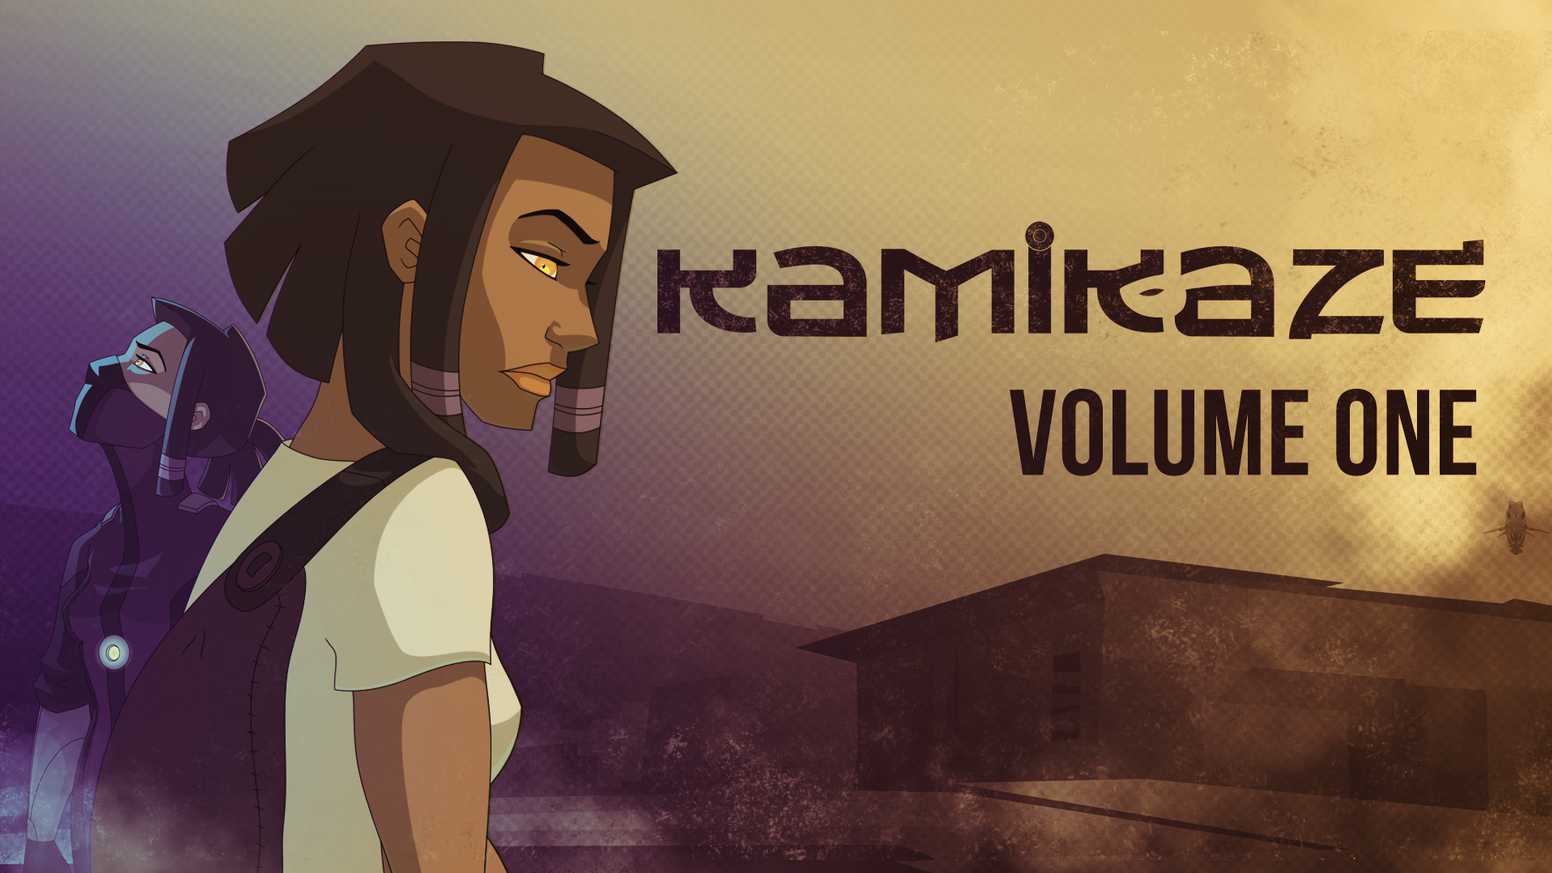 Thank you for helping us bring the Award Winning webcomic Kamikaze to its first printed form - a 60 page graphic novel!